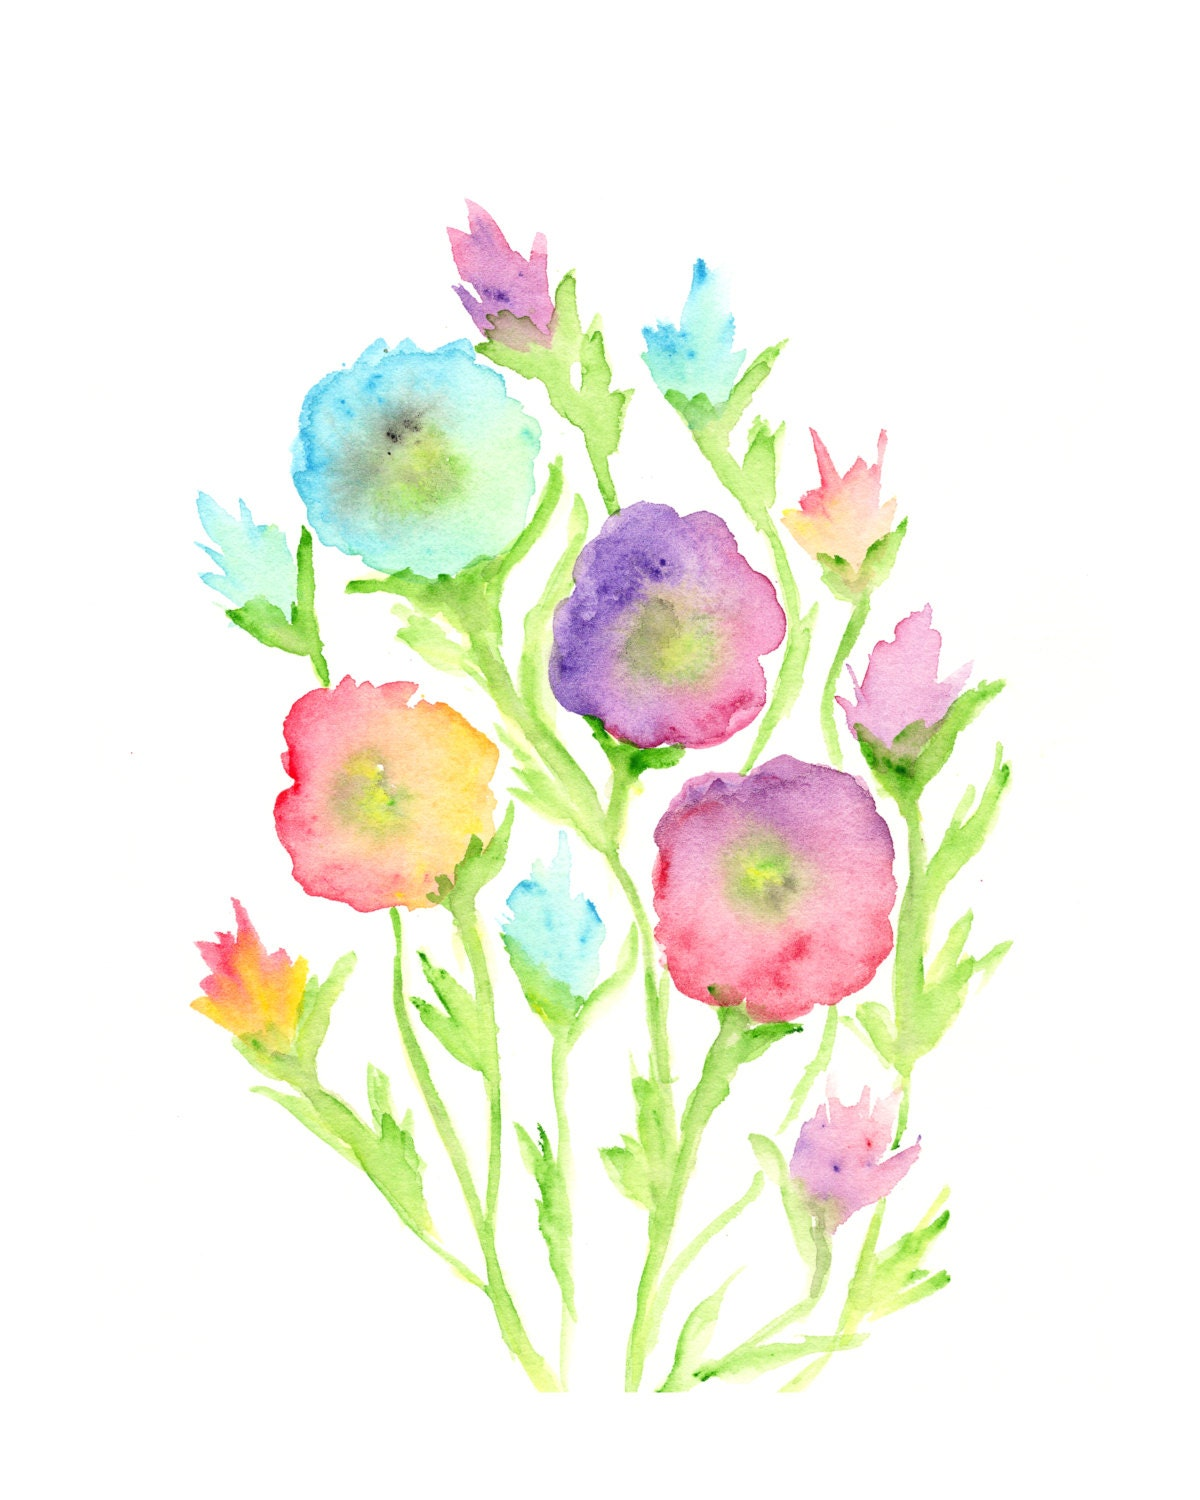 Abstract watercolor flowers images for Watercolor painting flowers